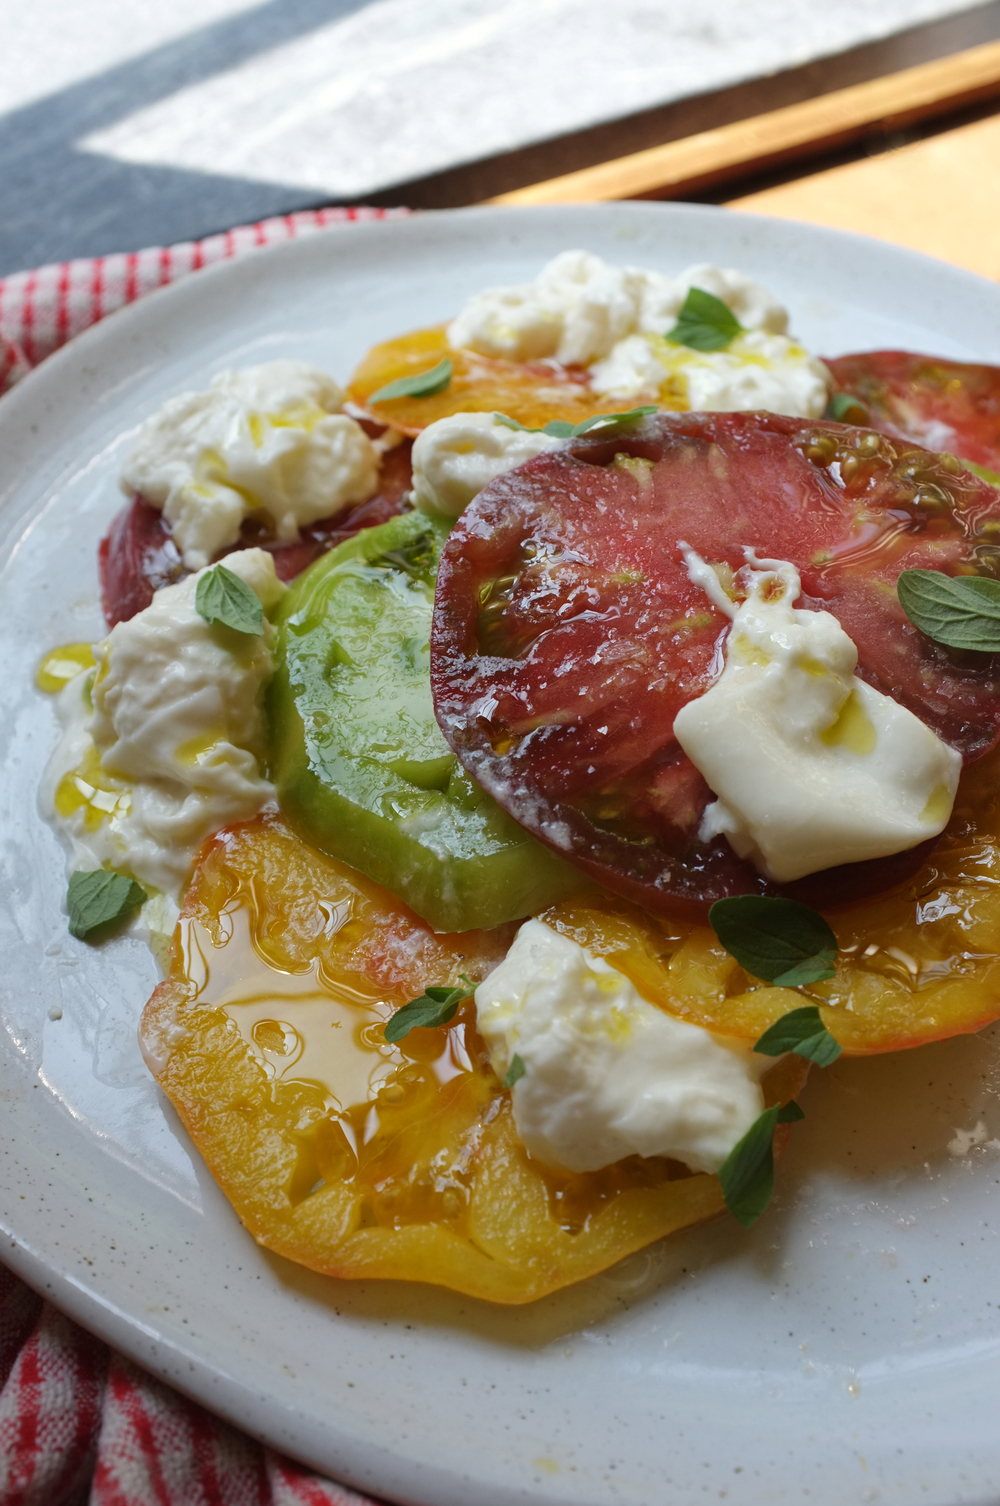 Fresh heirloom tomatoes with burrata, olive oil, oregano and Maldon salt.